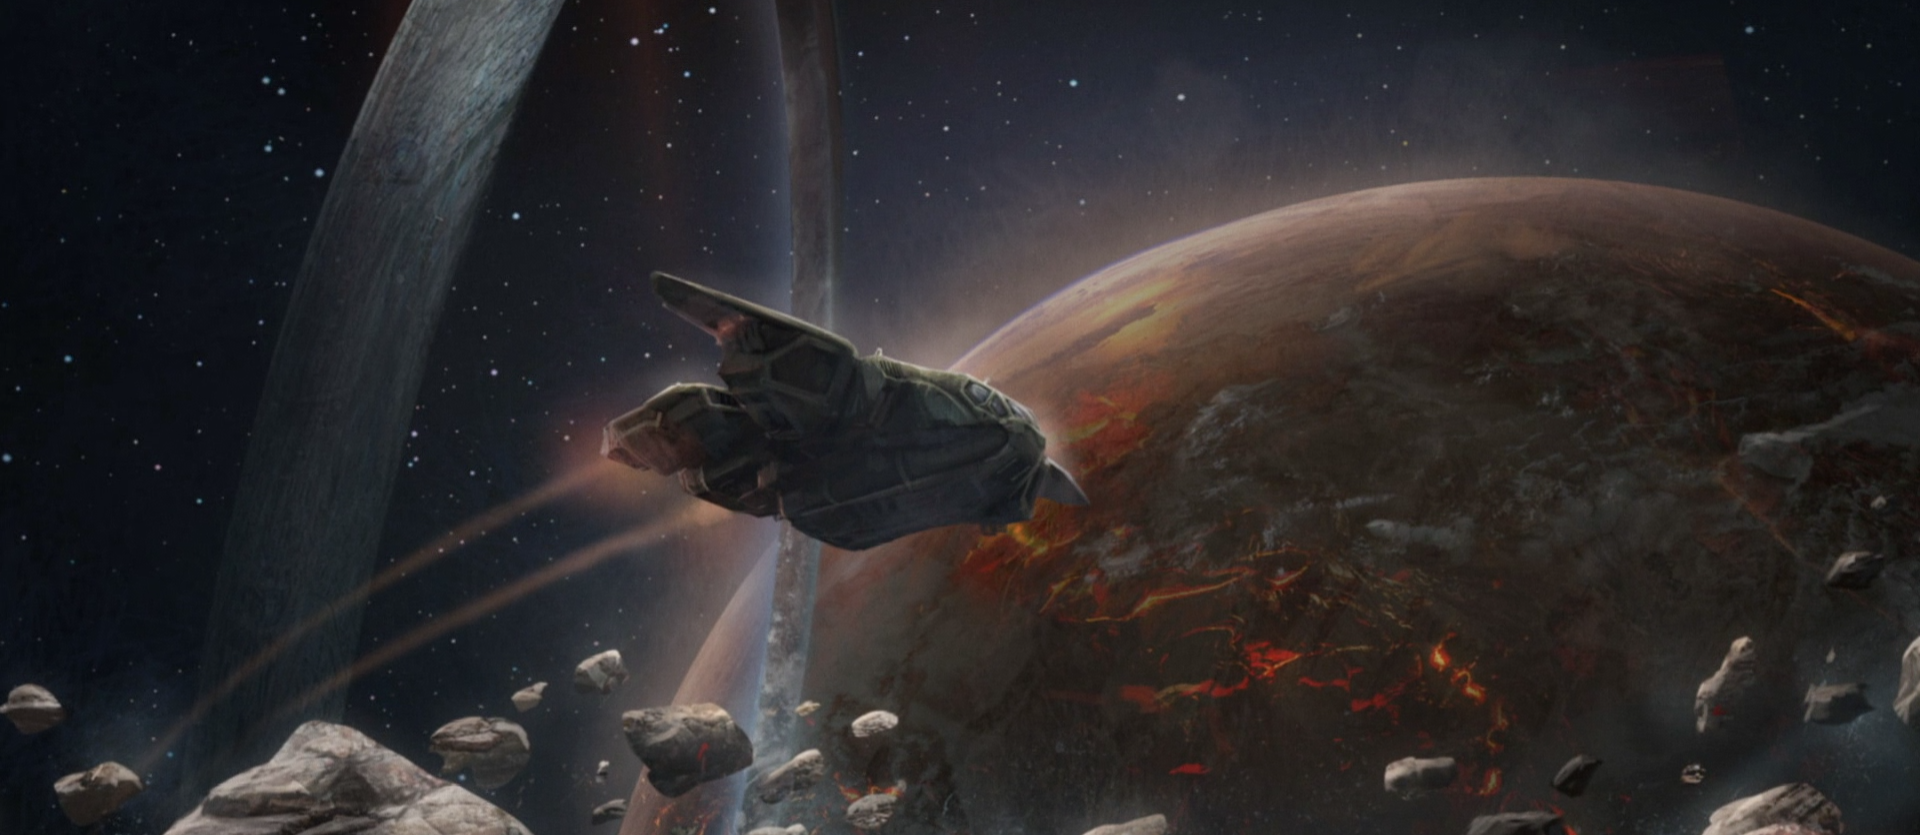 BATTLE OF INSTALLATION 03 - UNSC forces leaving Gamma Halo with the Conduit to take it to New Phoenix, Earth to stop Jul Mdama's Covenant invasion force, July 2557.